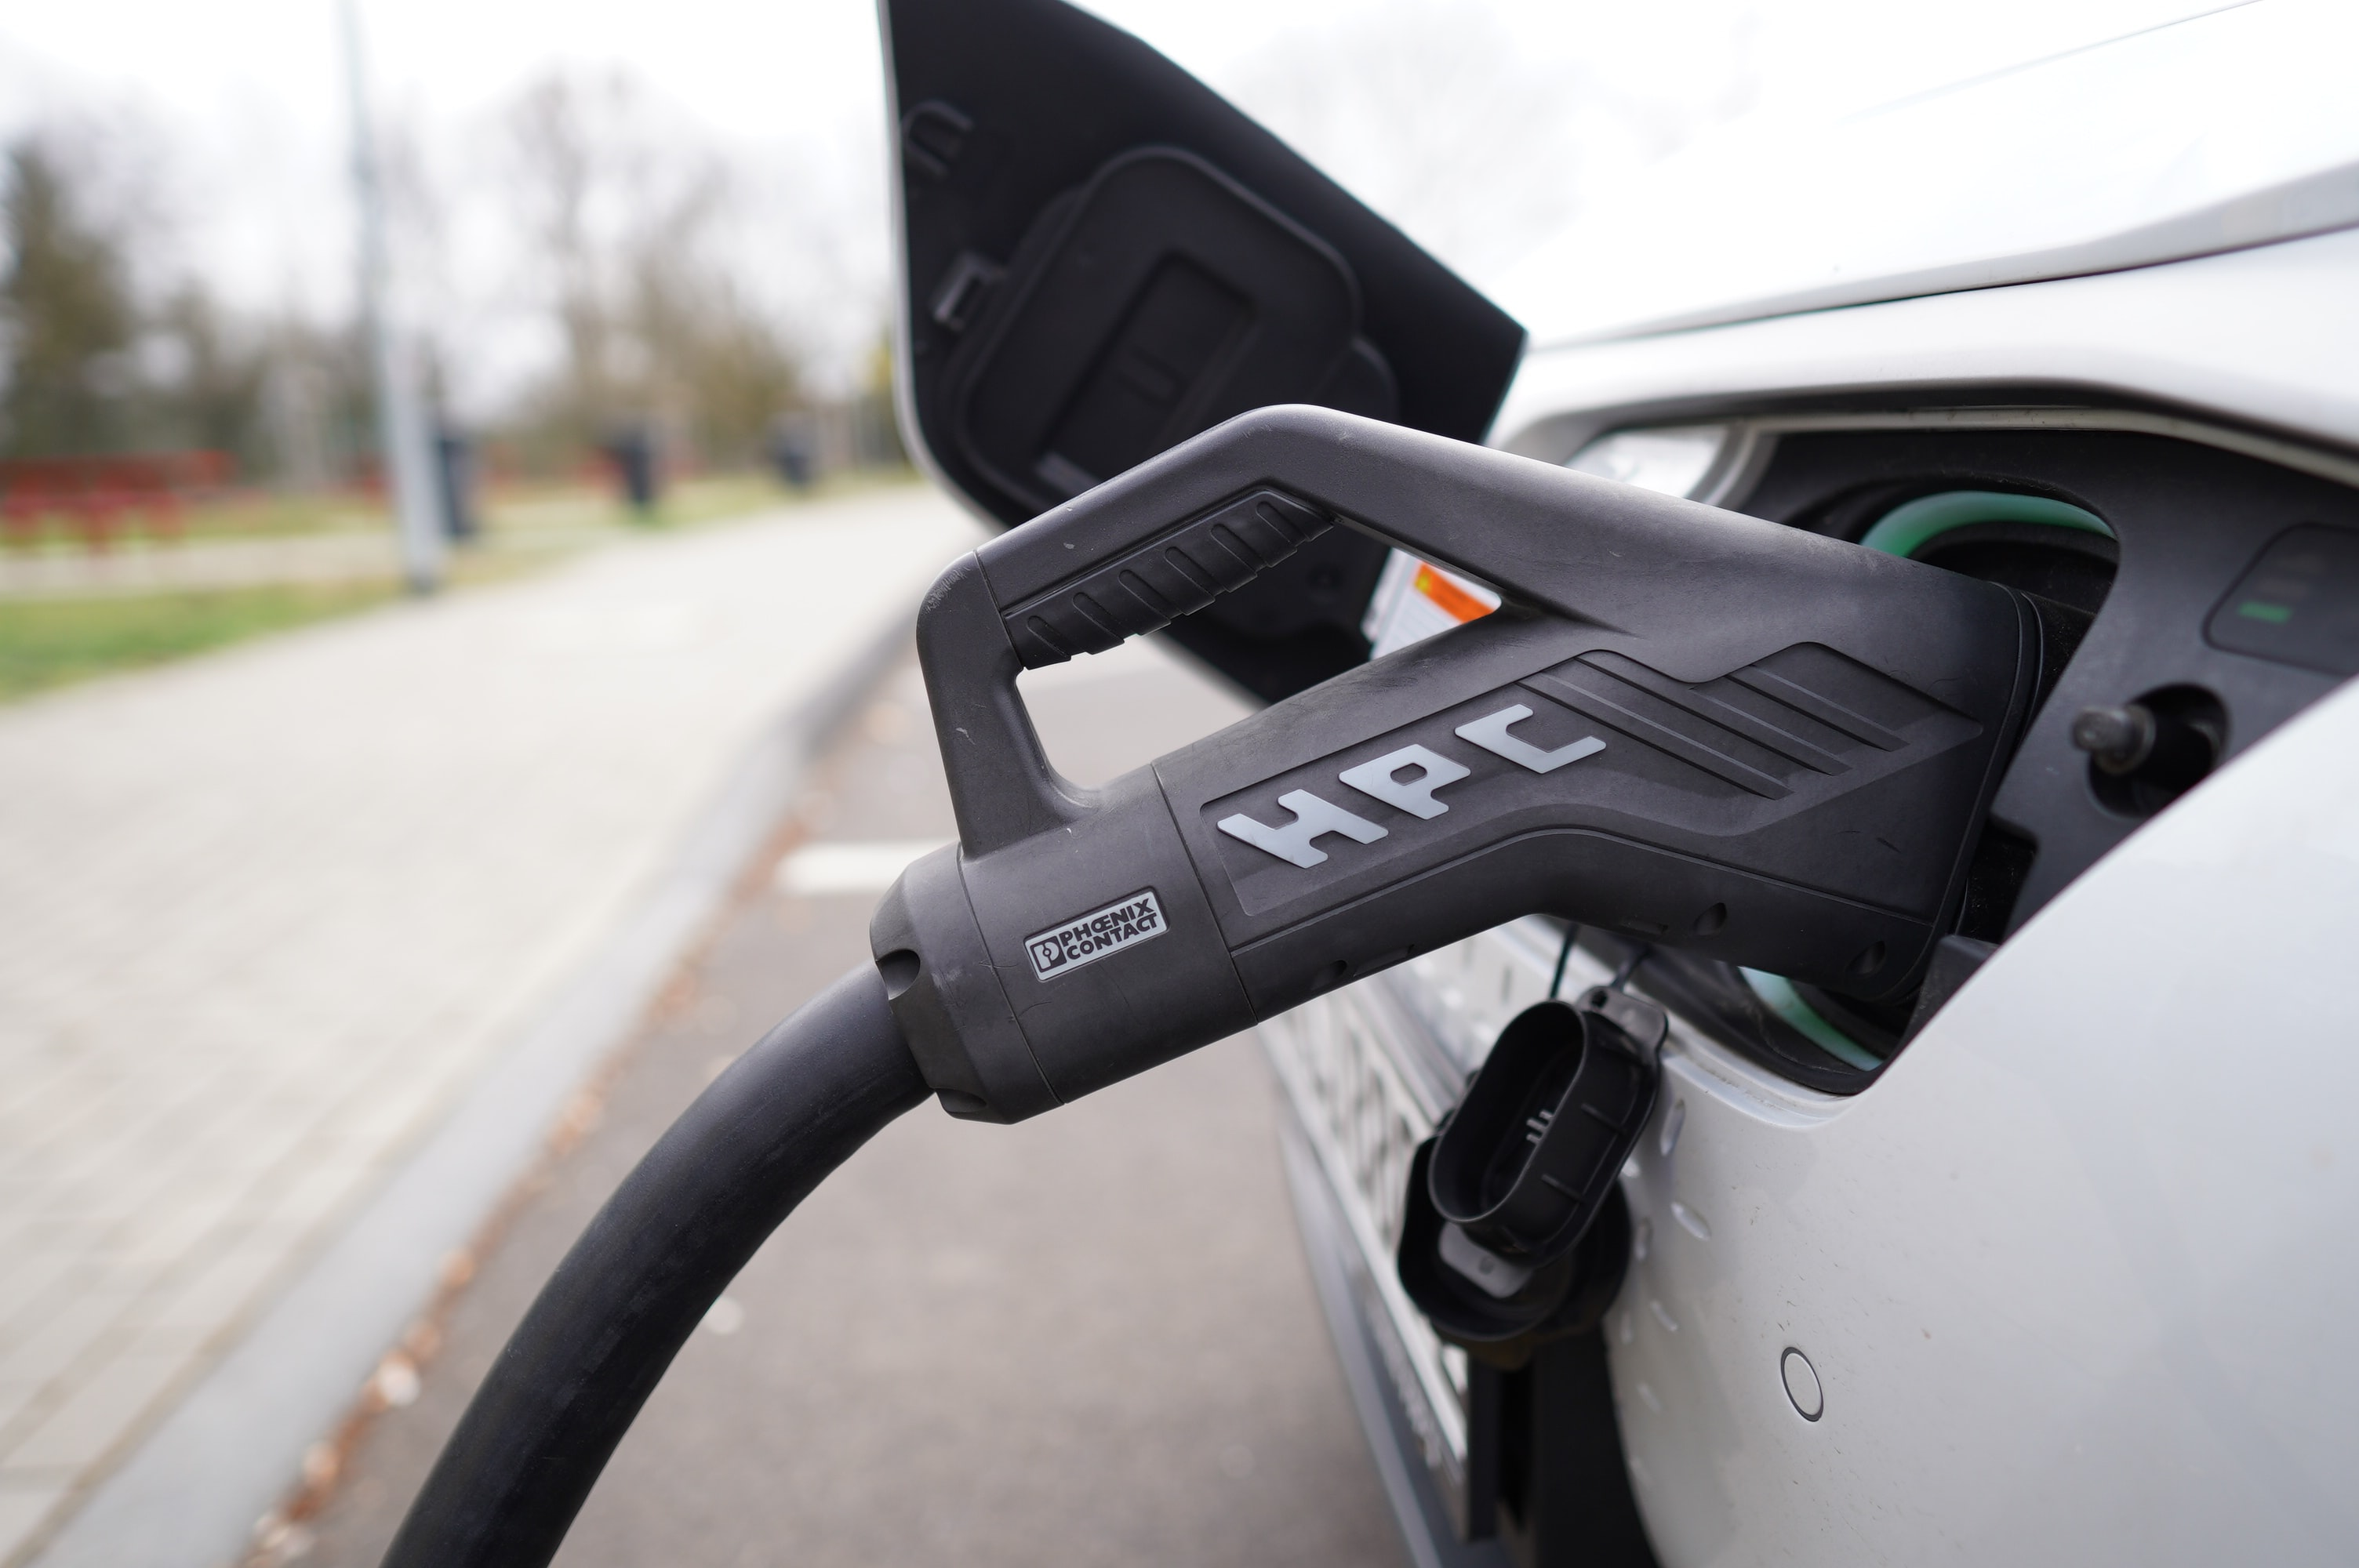 Liquid cooling rapid chargers - how does it work?